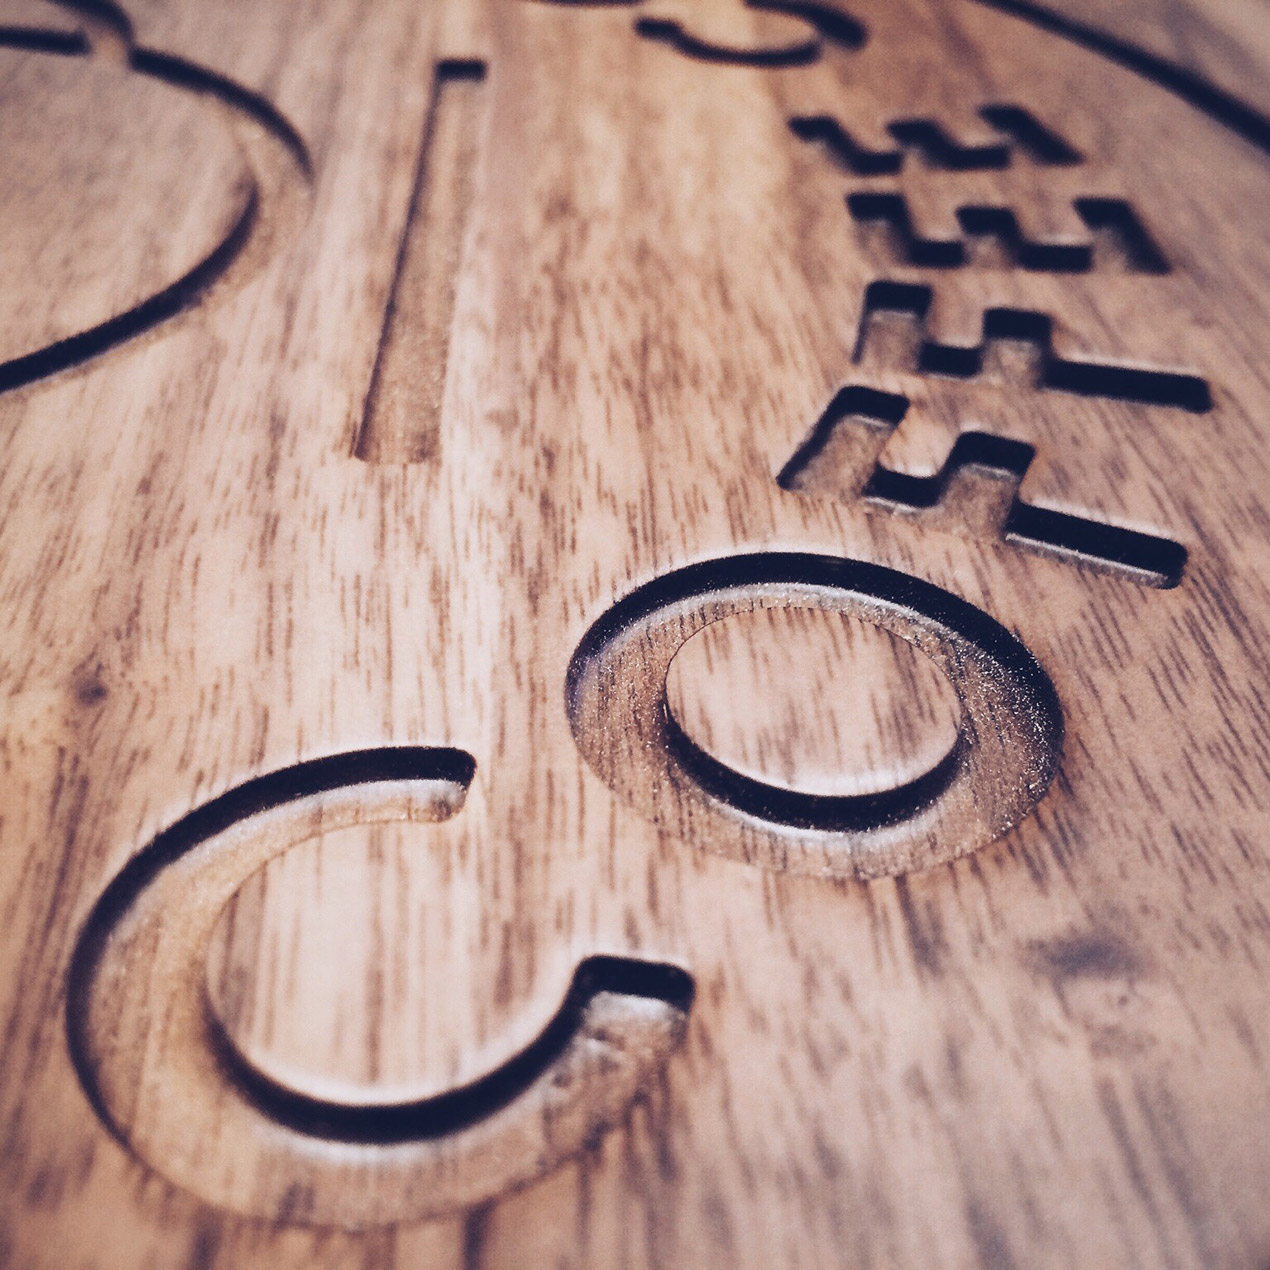 the letters coffee carved in to wooden table